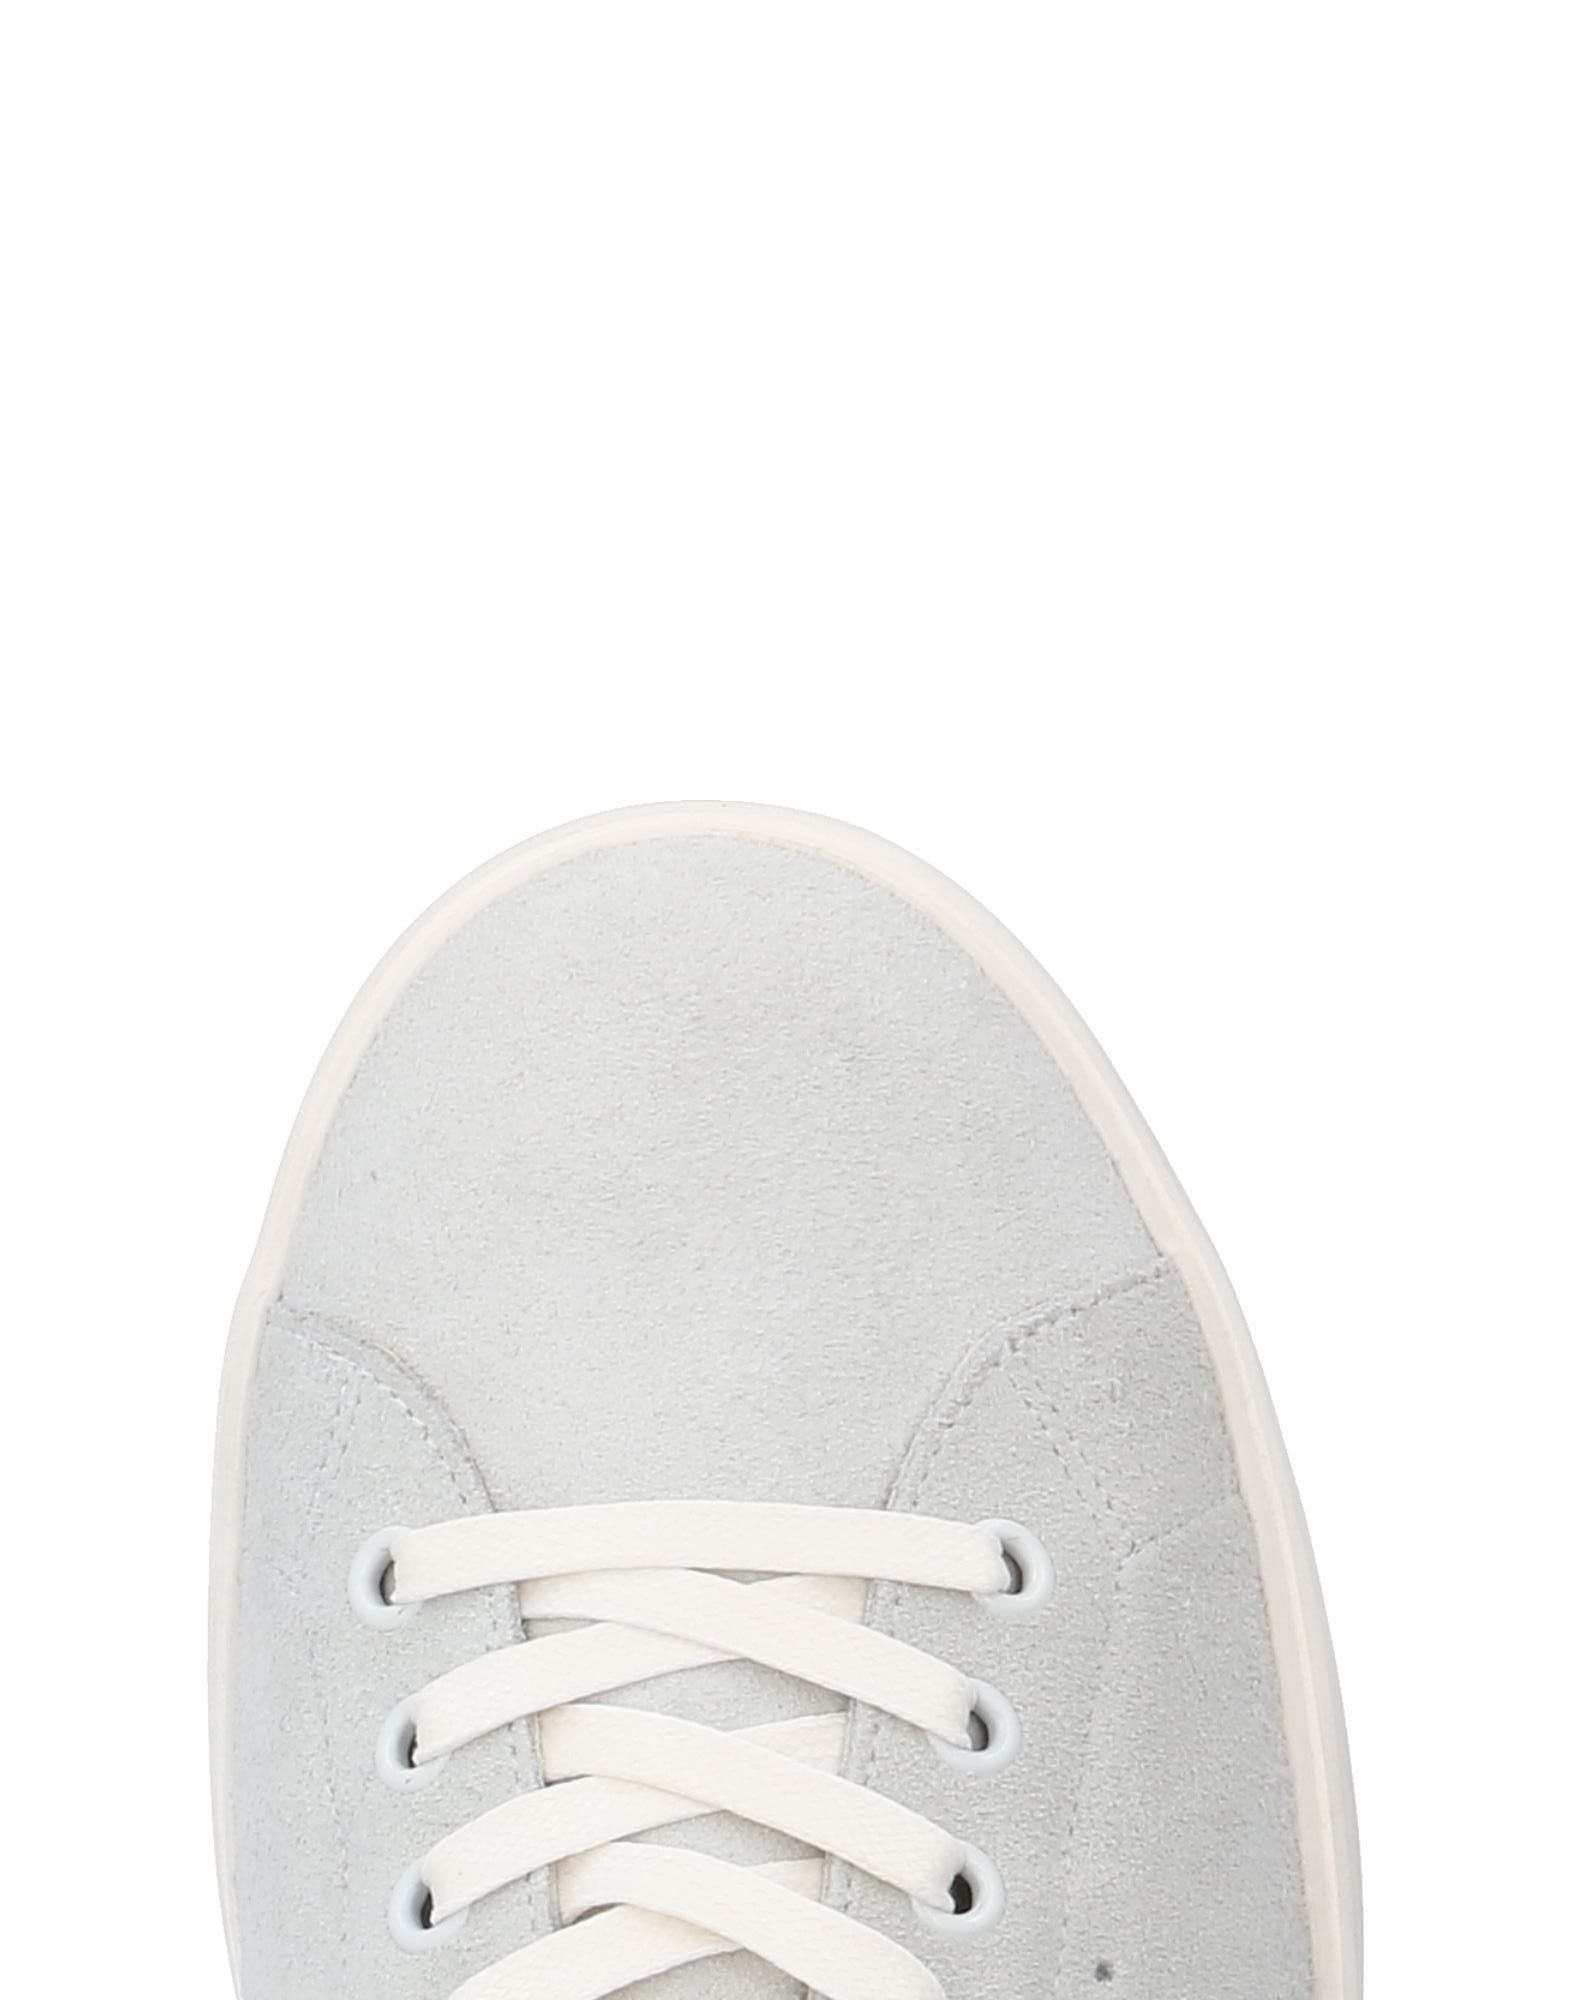 Sneakers Leather Crown Uomo Uomo Uomo - 11498728BS dafef0